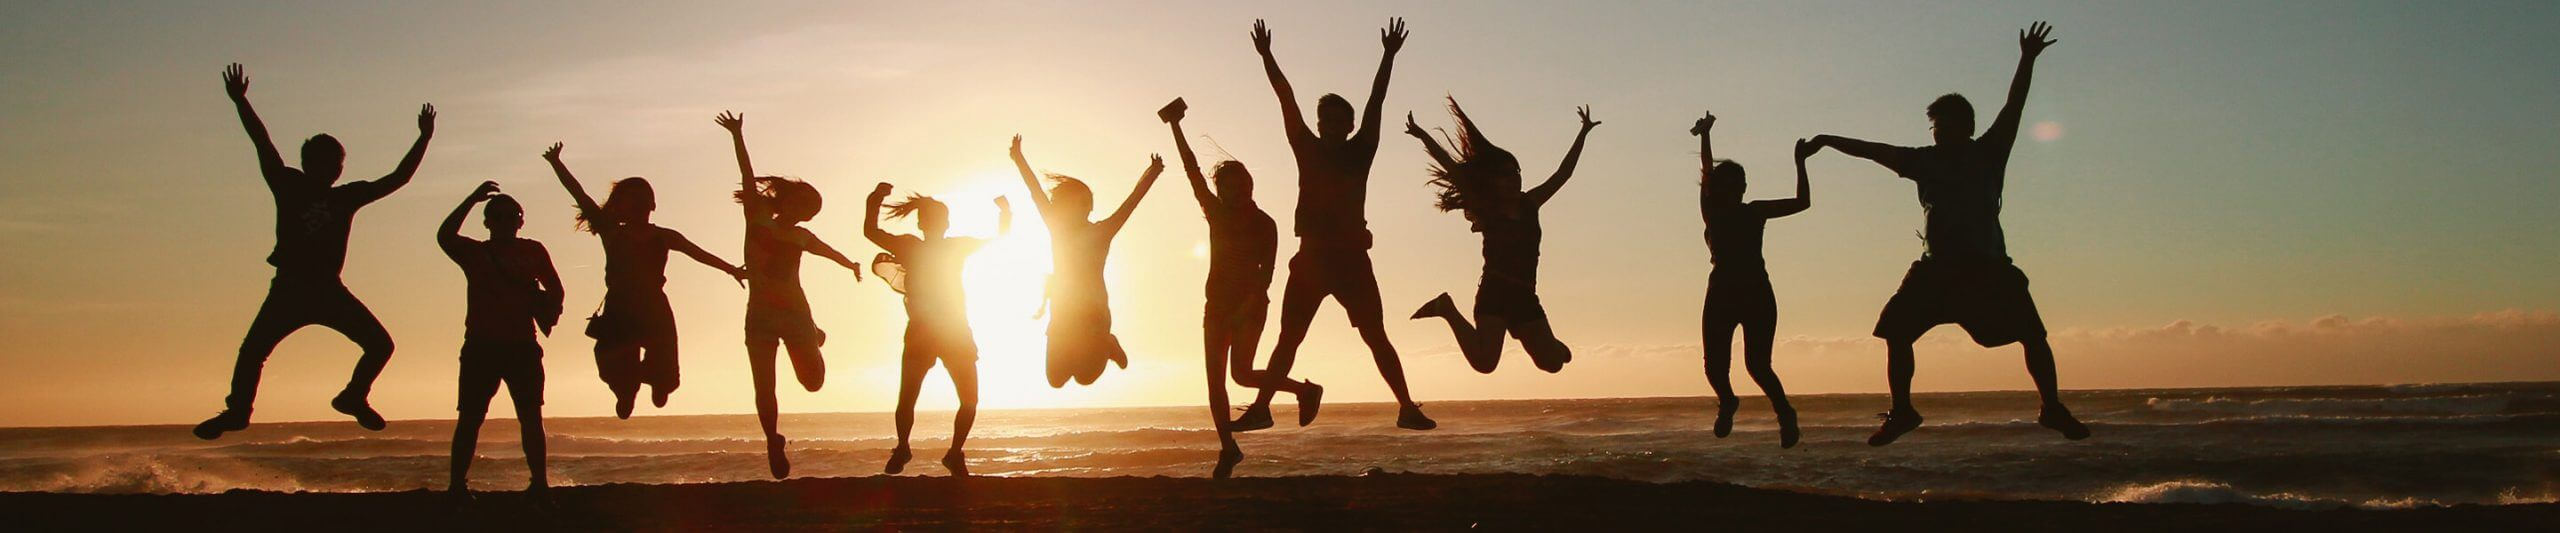 group of people jumping in air at sunset